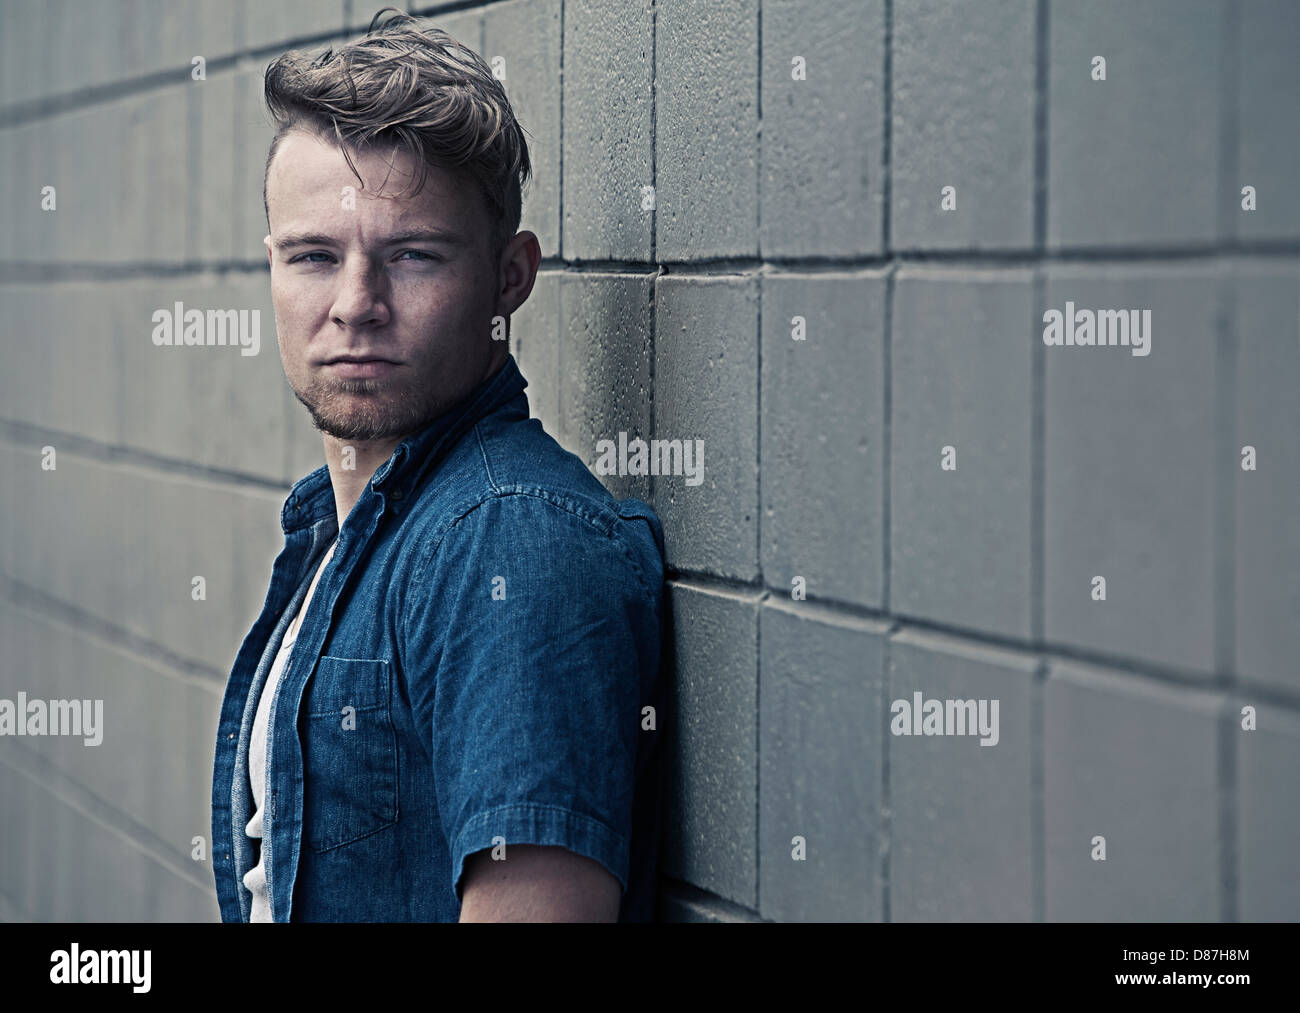 Man standing against block wall - Stock Image